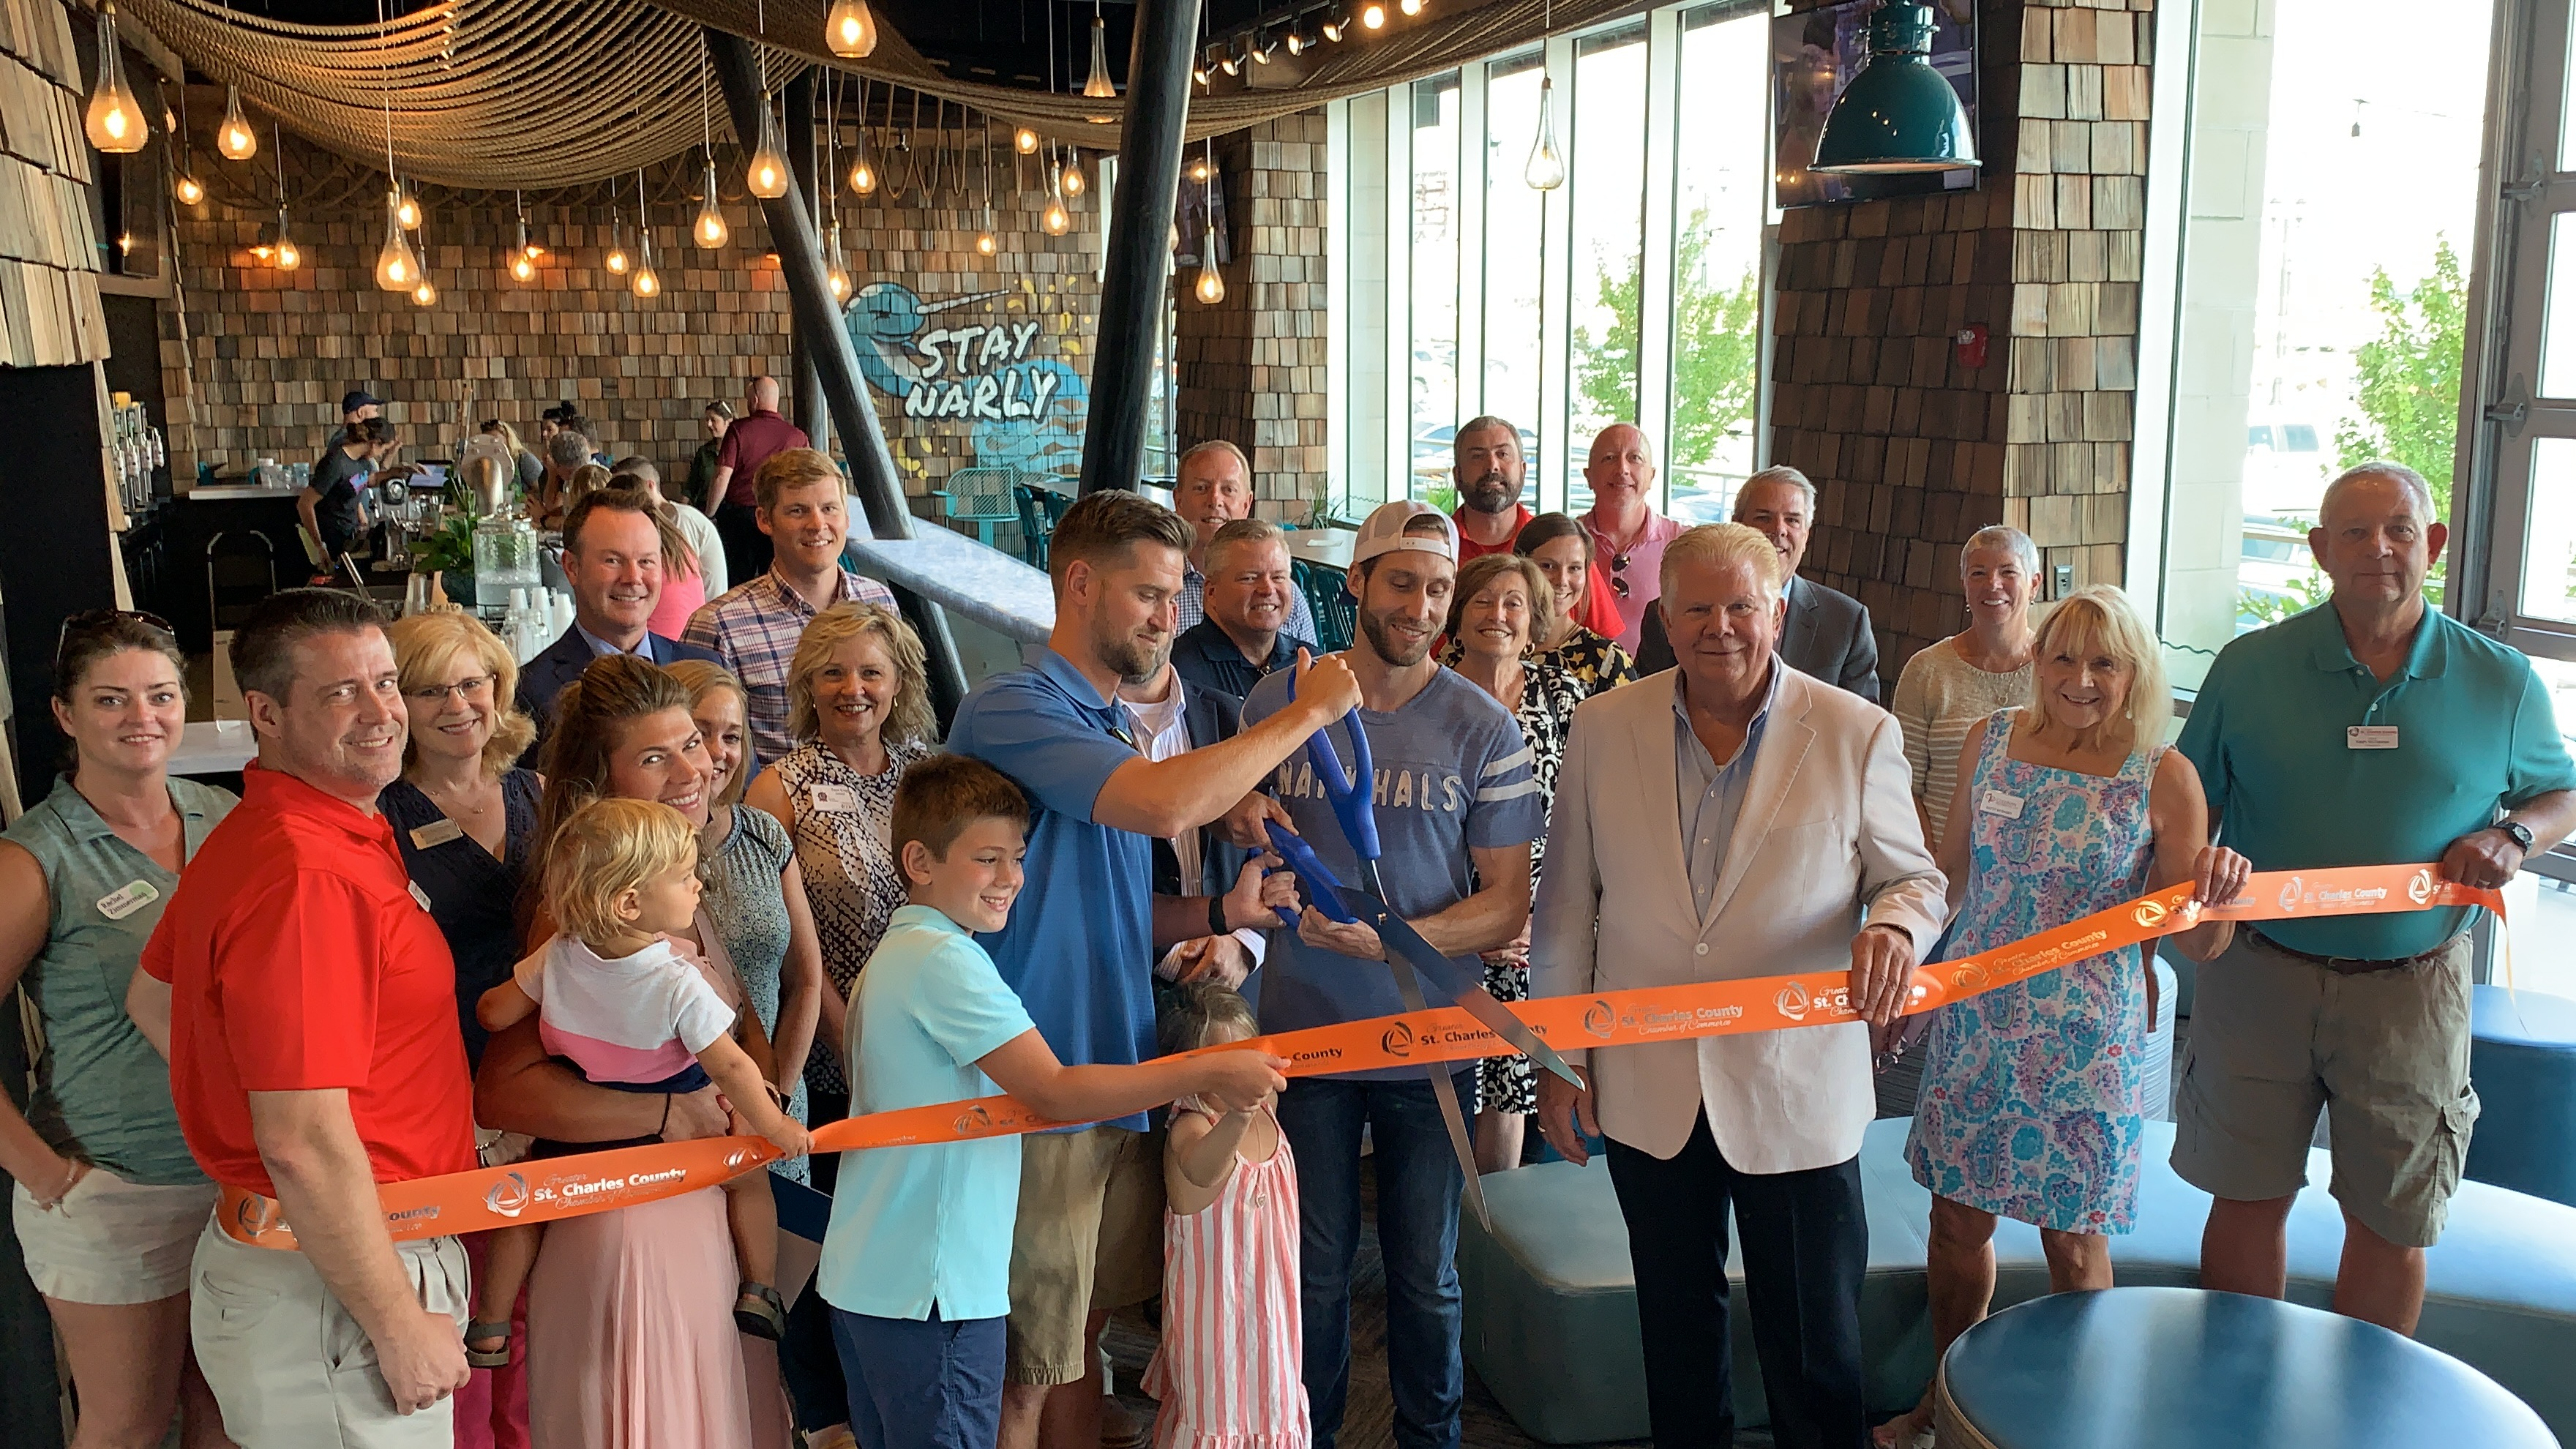 Narwhal's Crafted Celebrates Grand Opening with Ribbon Cutting Celebration